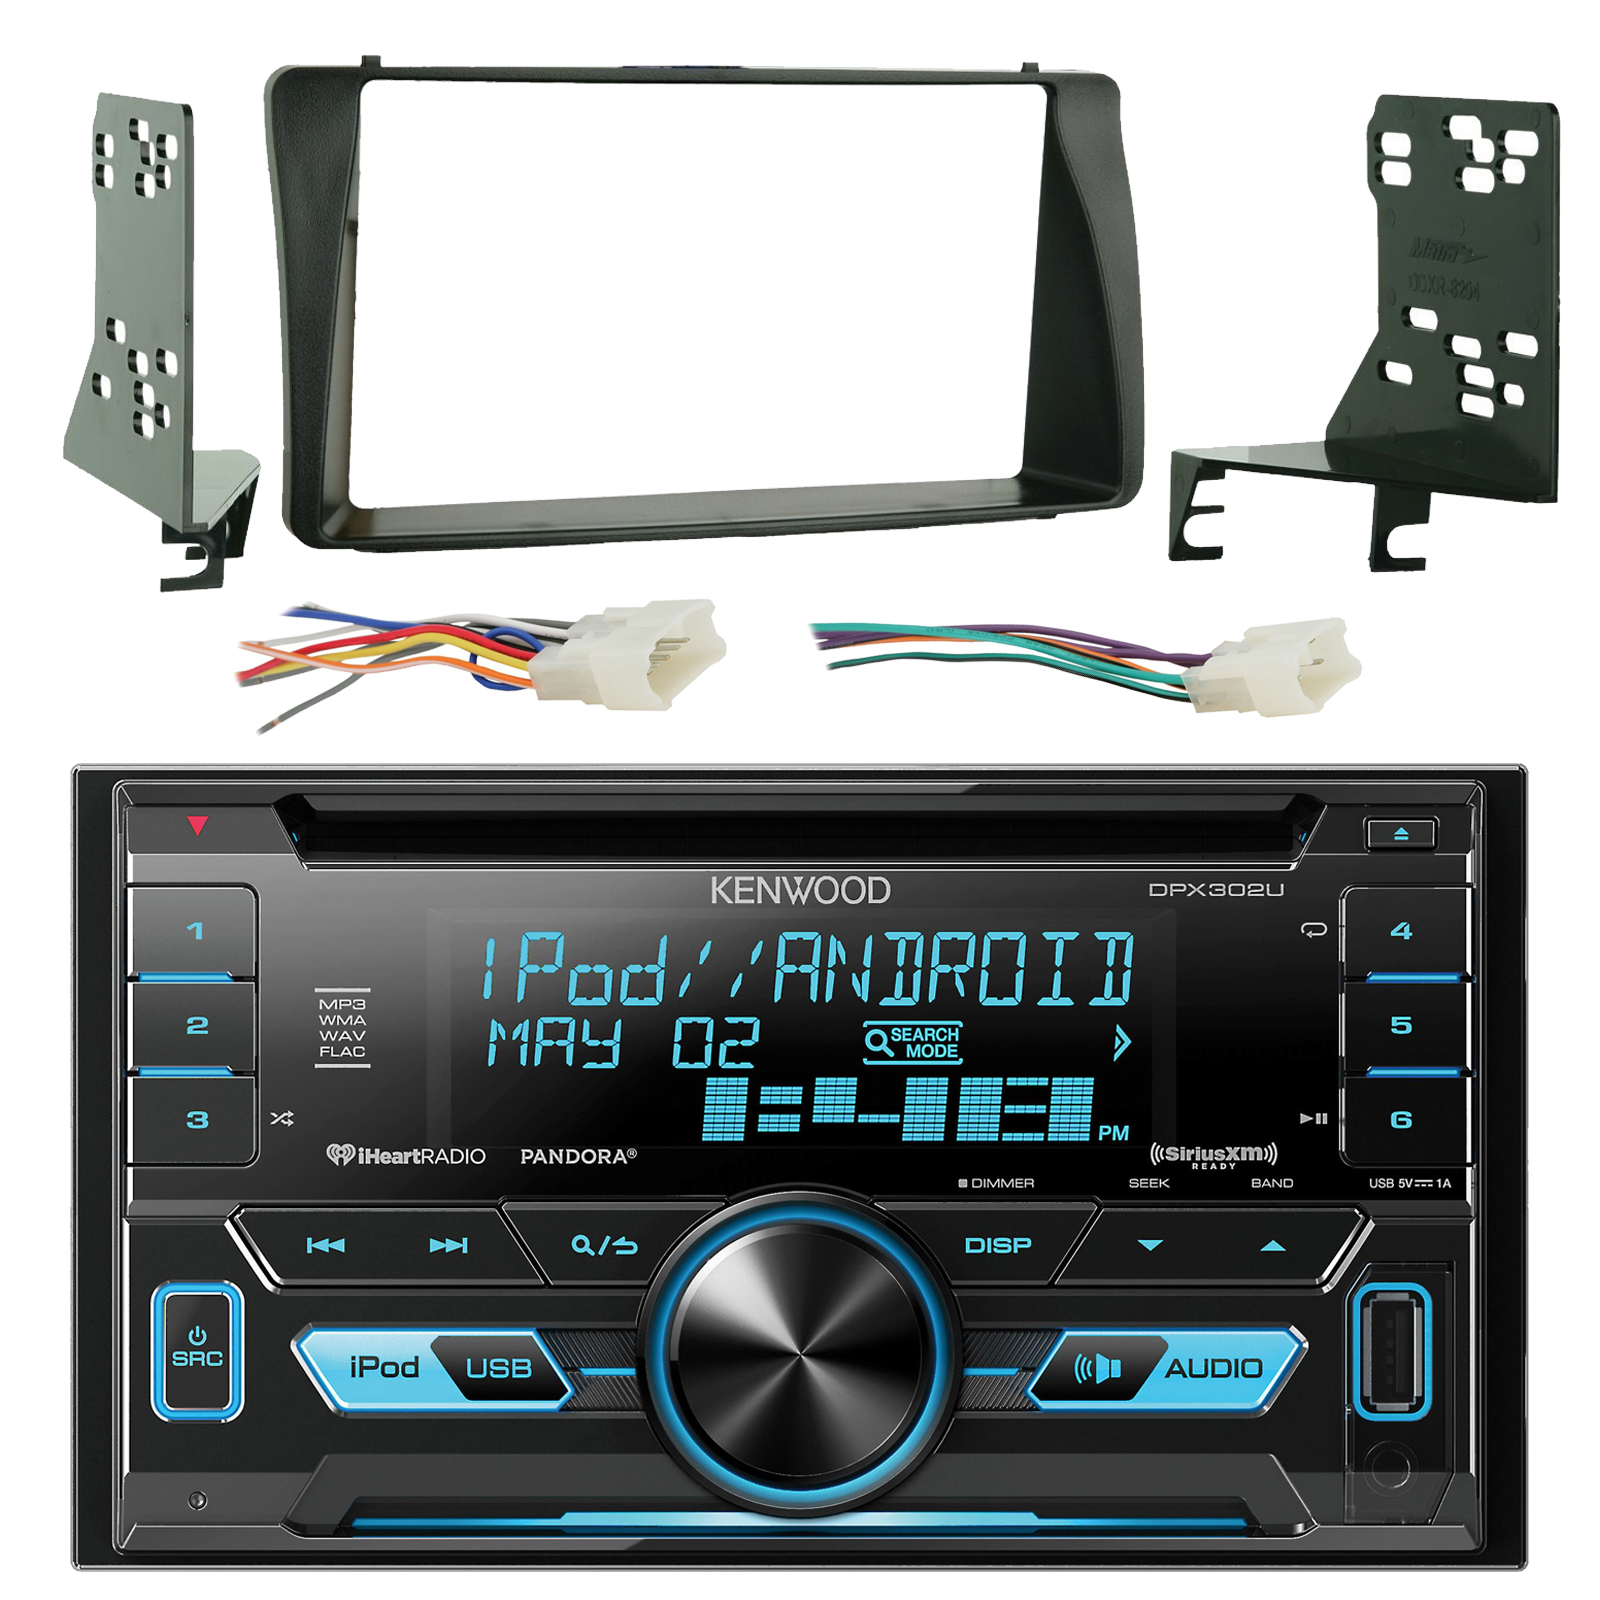 kenwood dpx302u double din cd mp3 player stereo receiver GM Factory Radio Wiring Harness Dash Wiring Harness